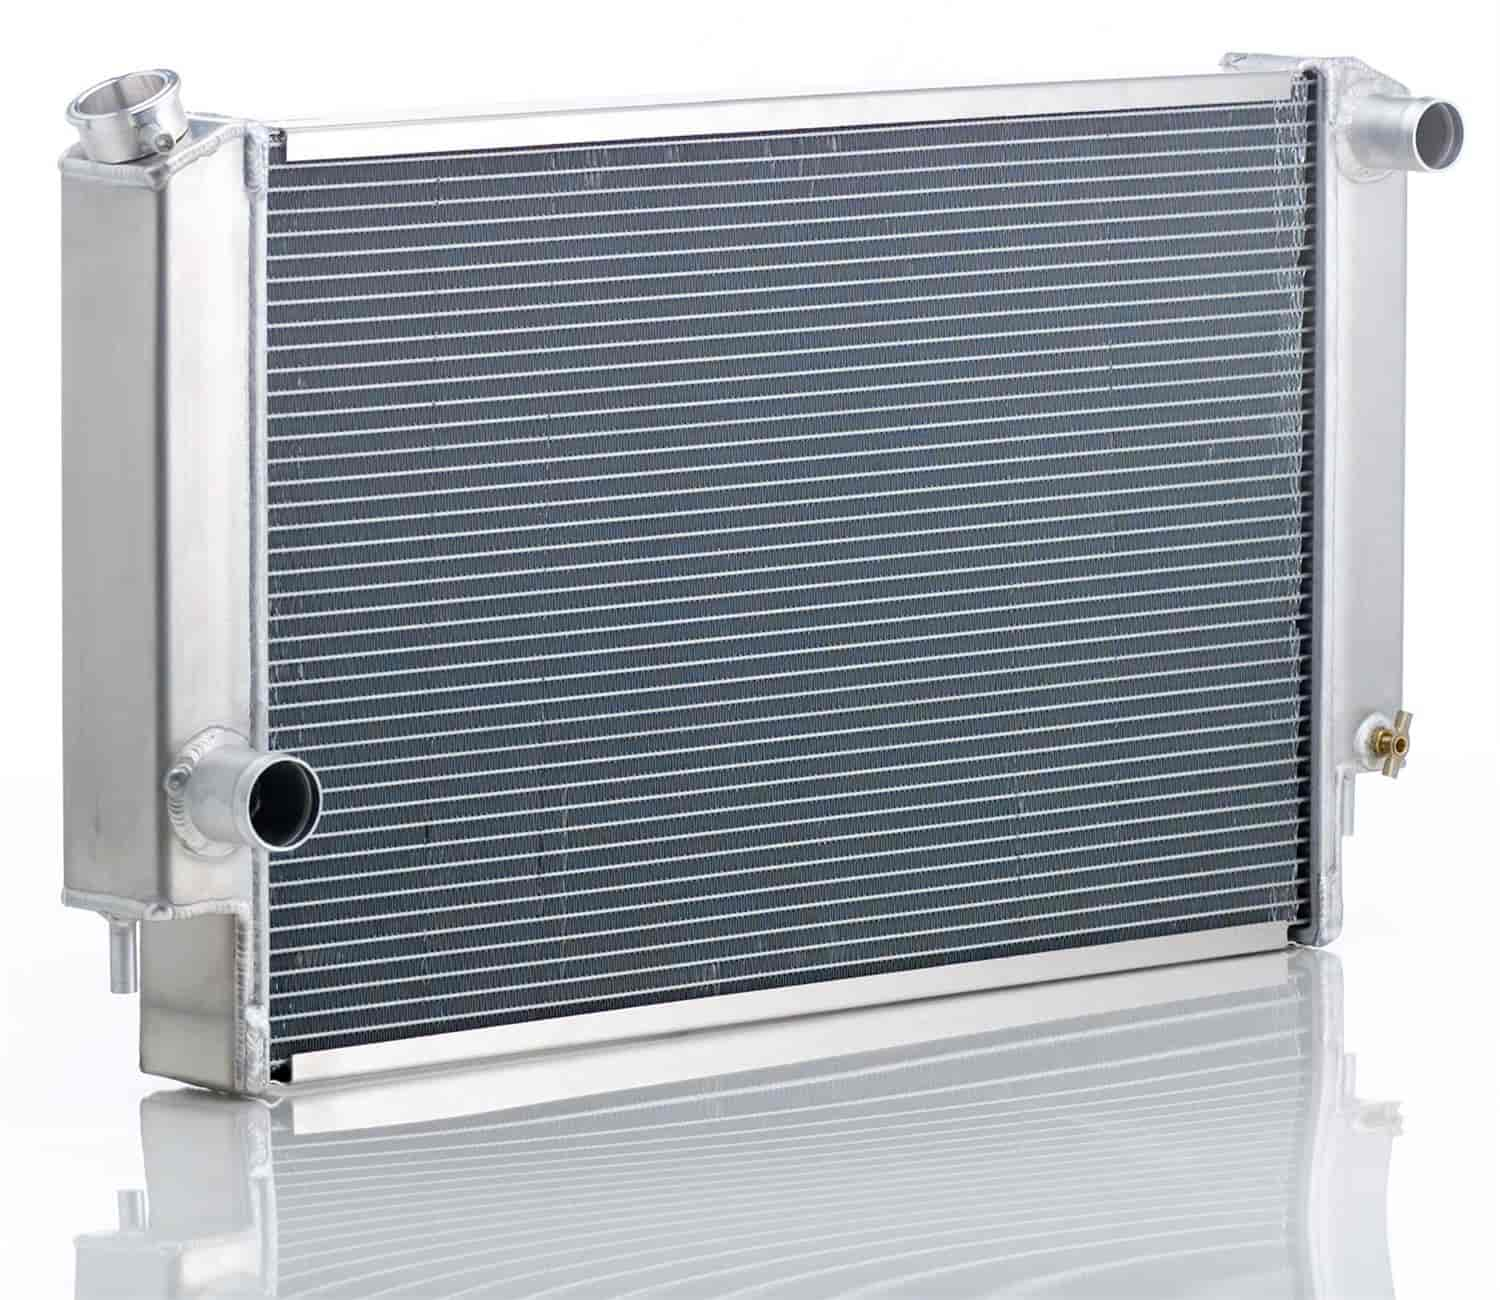 Be Cool Radiators 60172 - Be Cool Crossflow Series Aluminum Radiators